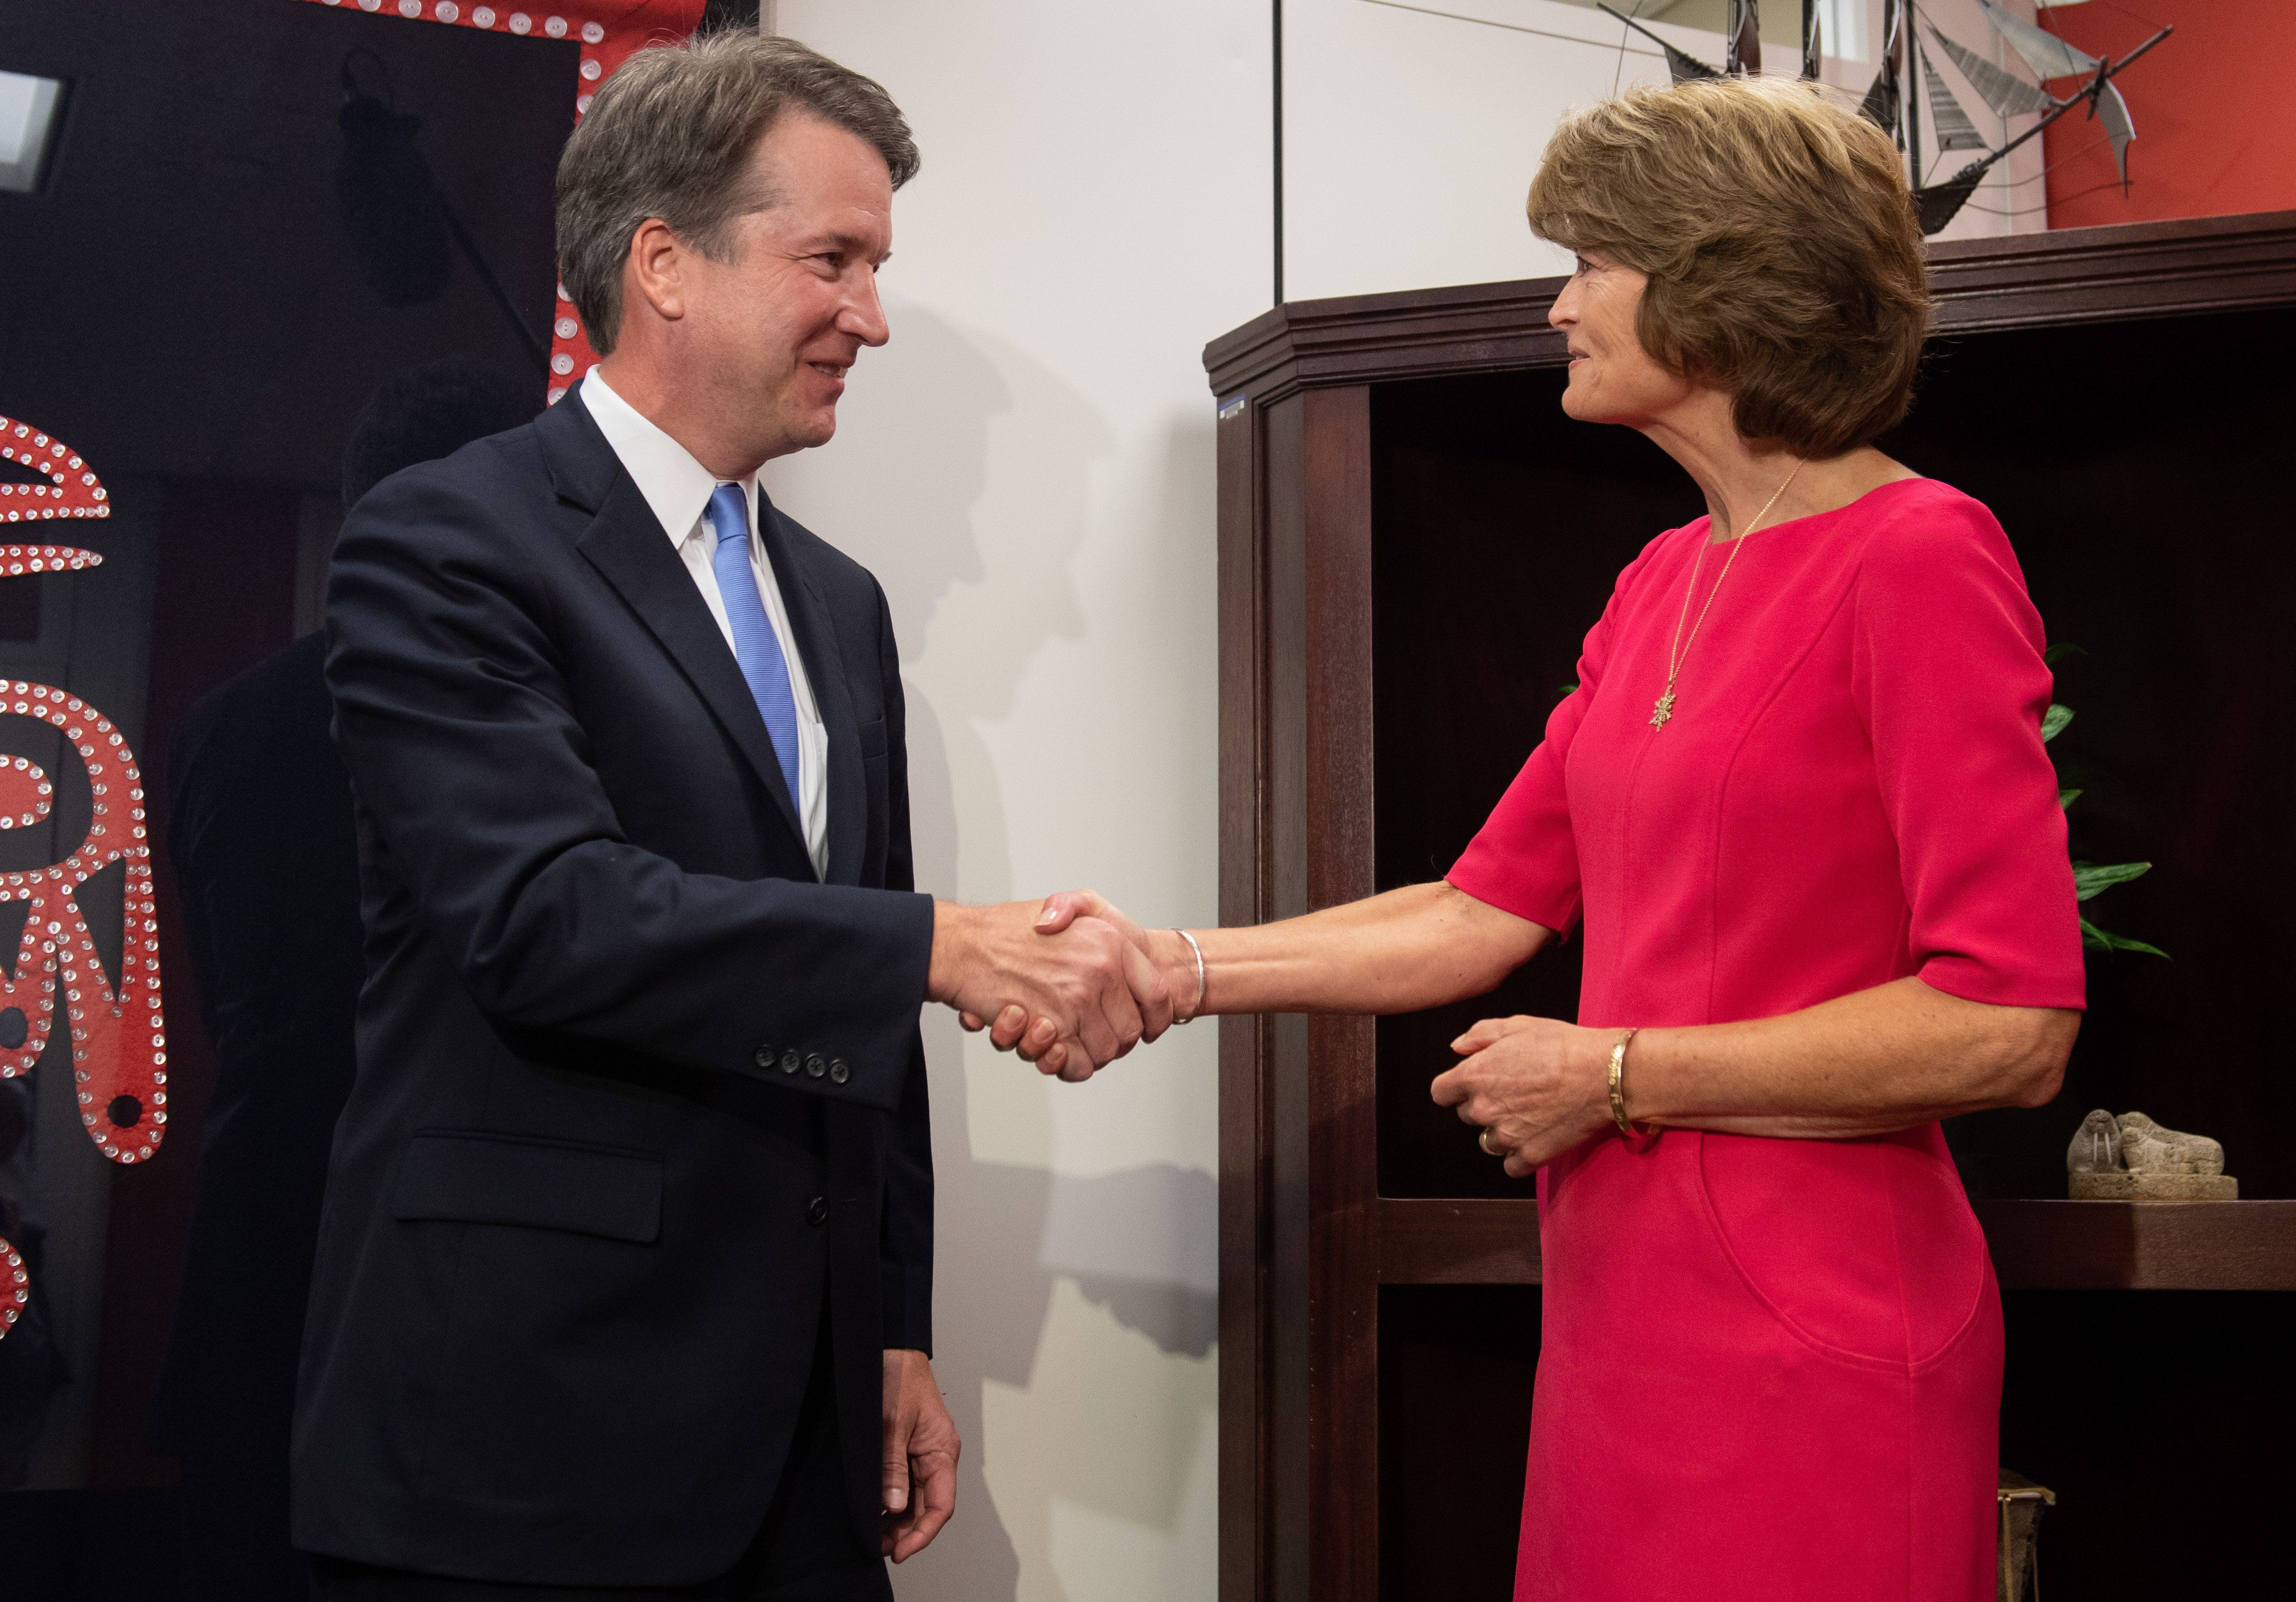 US Senator Lisa Murkowski, Republican of Alaska, shakes hands with US Supreme Court associate justice nominee Brett Kavanaugh prior to a meeting on Capitol Hill in Washington, DC, August 23, 2018. (Photo by SAUL LOEB / AFP)        (Photo credit should read SAUL LOEB/AFP/Getty Images)